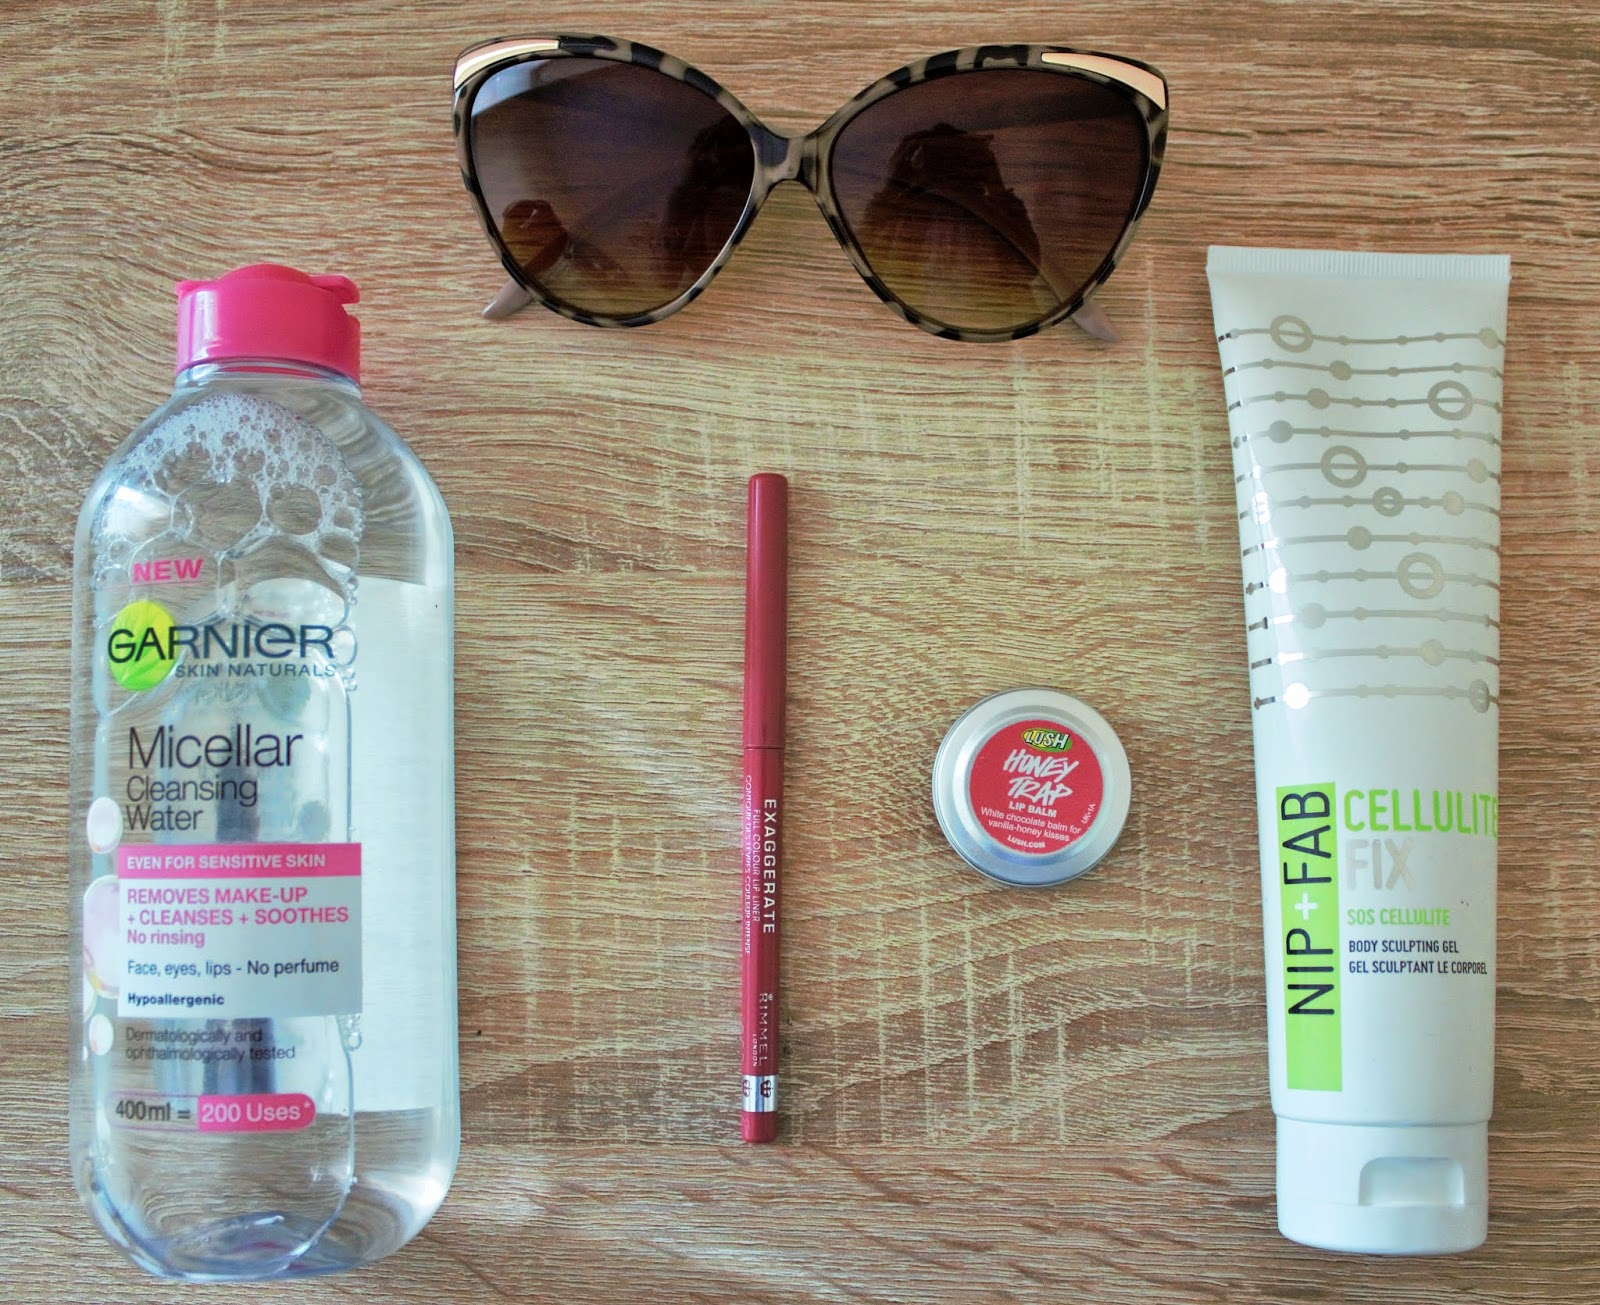 April Favourites - Garnier Micellar Water, Rimmel Exaggerate Lip Liner in Eastend Snob, Lush Honey Trap Lip Balm, Nip+Fab Cellulite Fix Body Sculpting Gel, River Island Cat Eye Sunglasses